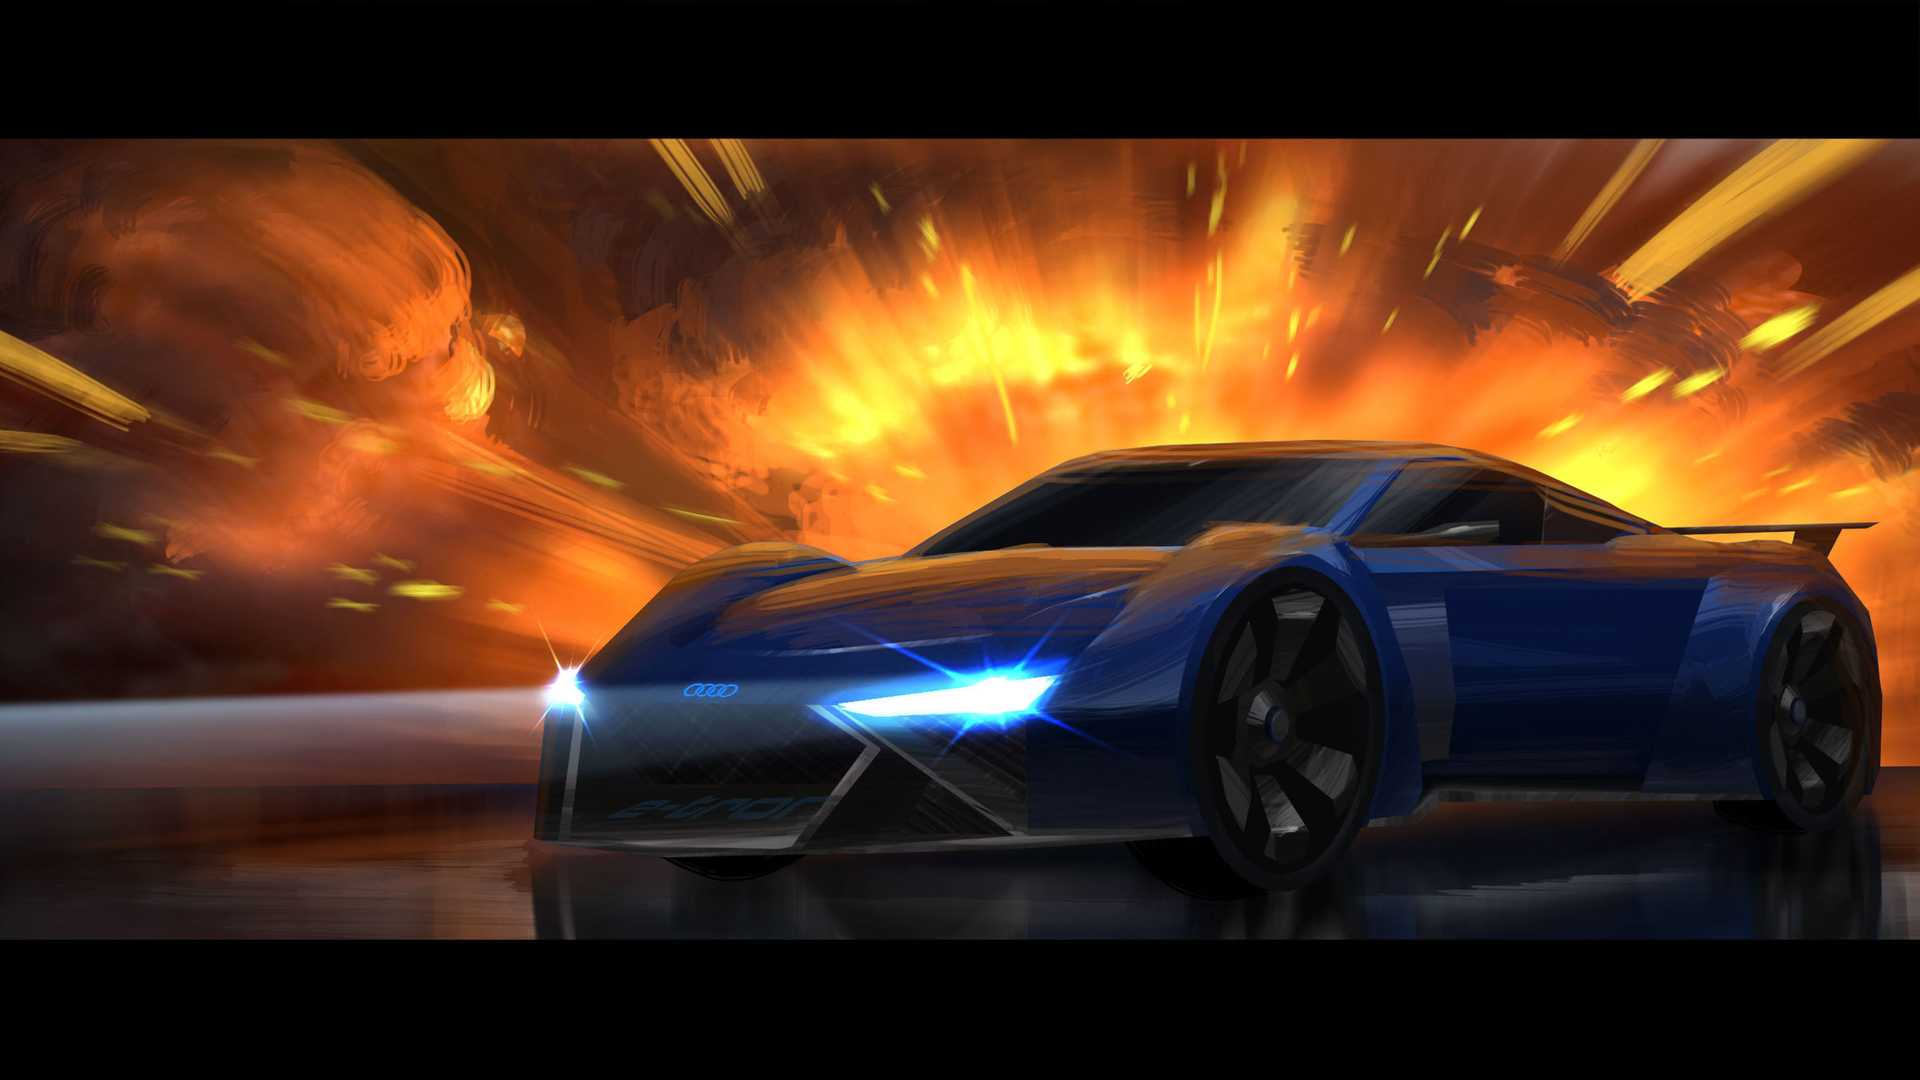 Audi RSQ E-Tron Is An Animated Spy Car You'll Never Drive